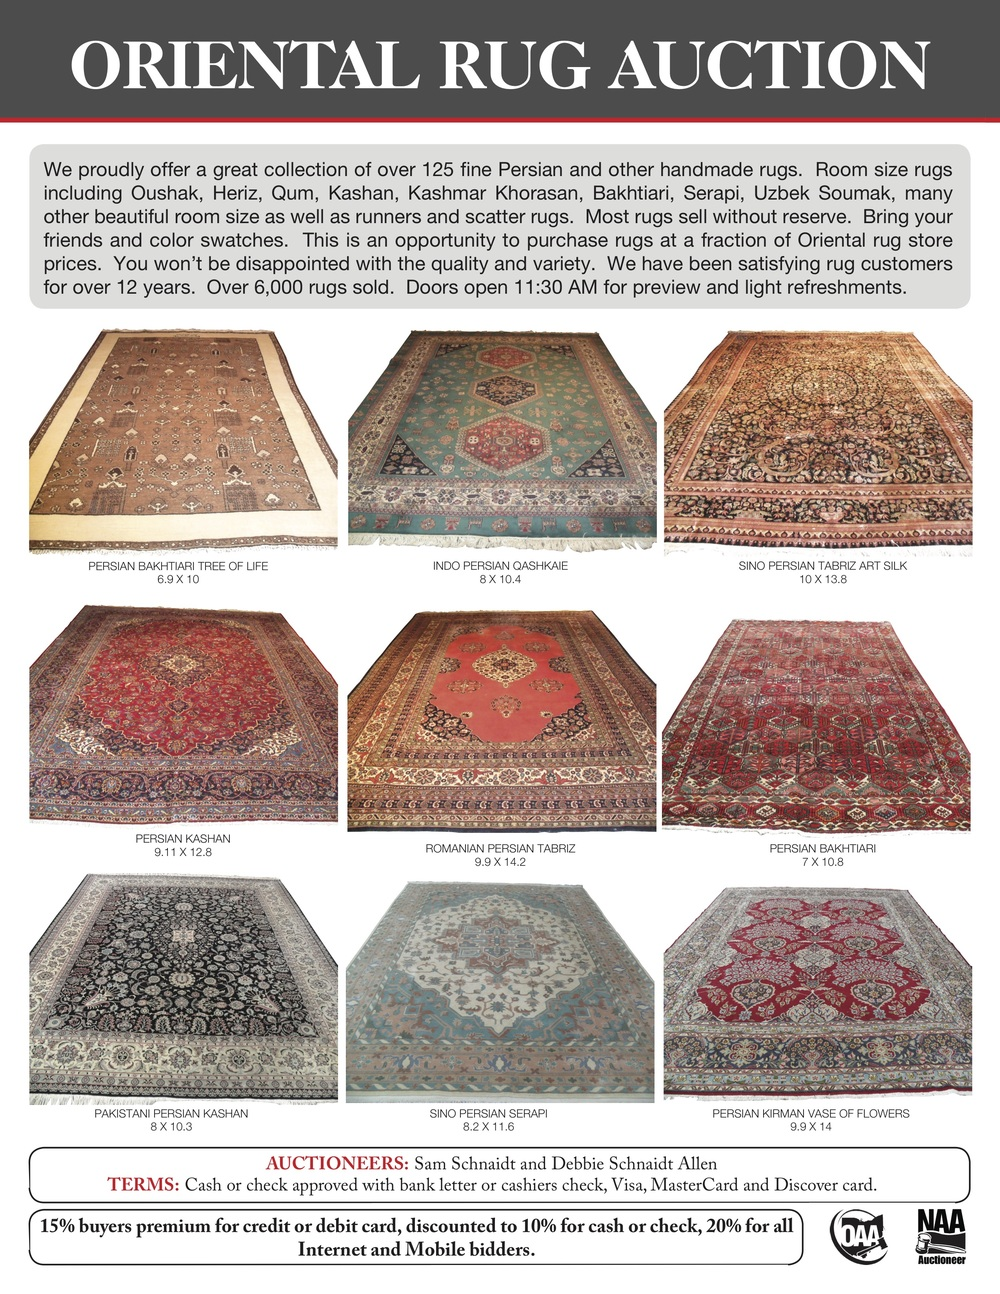 June Oriental Rug Flyer 16 high res_2.jpg